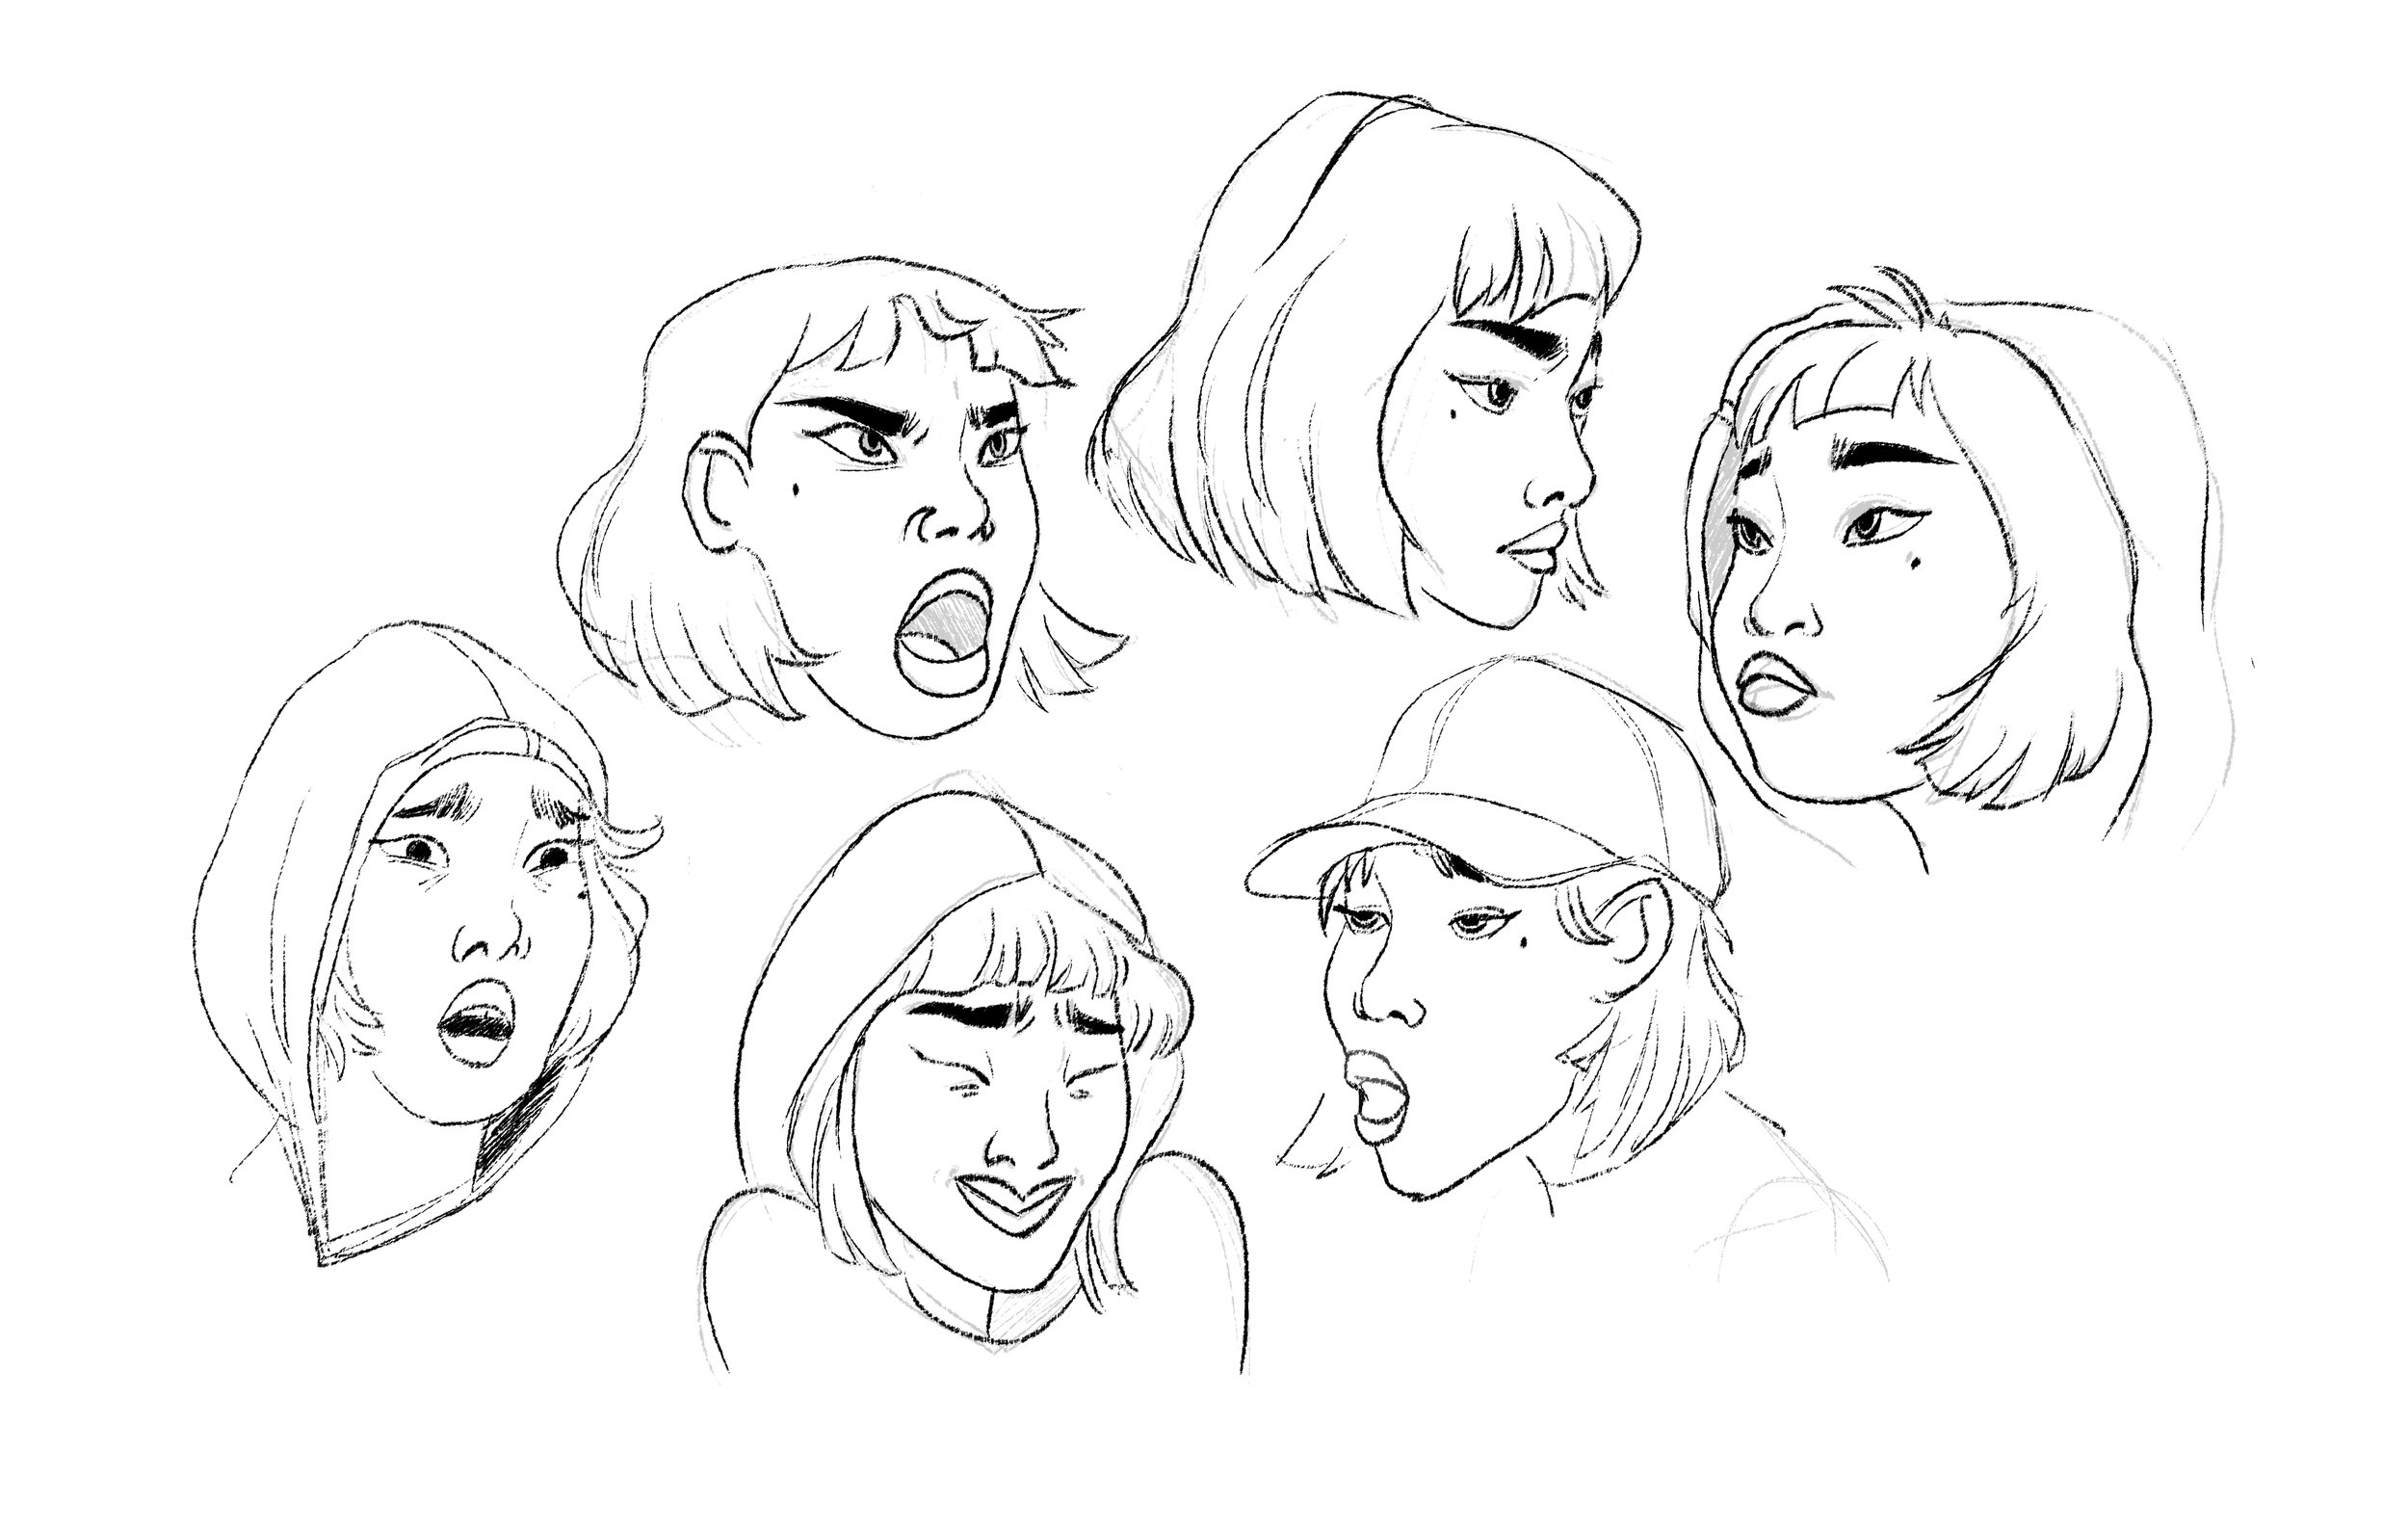 Character development for personal project